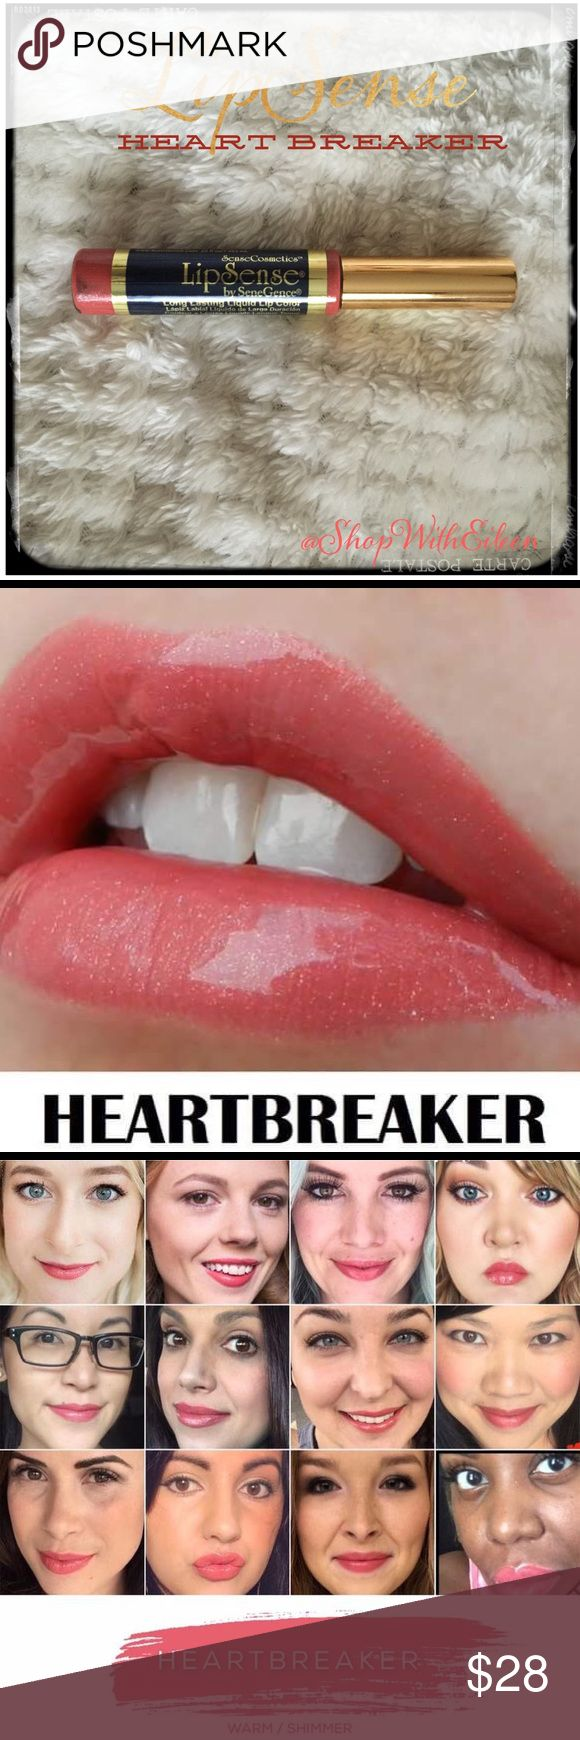 LipSense HEARTBREAKER Long Lasting Lip Color LipSense HEARTBREAKER Long Lasting Lip Color The premier product of Senegence, LipSense lasts all day – up to 18 hours. It is water-proof, kiss-proof, smudge-proof, and completely budge-proof. LipSense comes in a variety of captivating colors and can be layered to produce your own custom look. I am not a consultant… But I have used LIPSENSE for 15 years and do not go a day without it! ❤️Custom Bundle & Save! Lip Sense Makeup ...